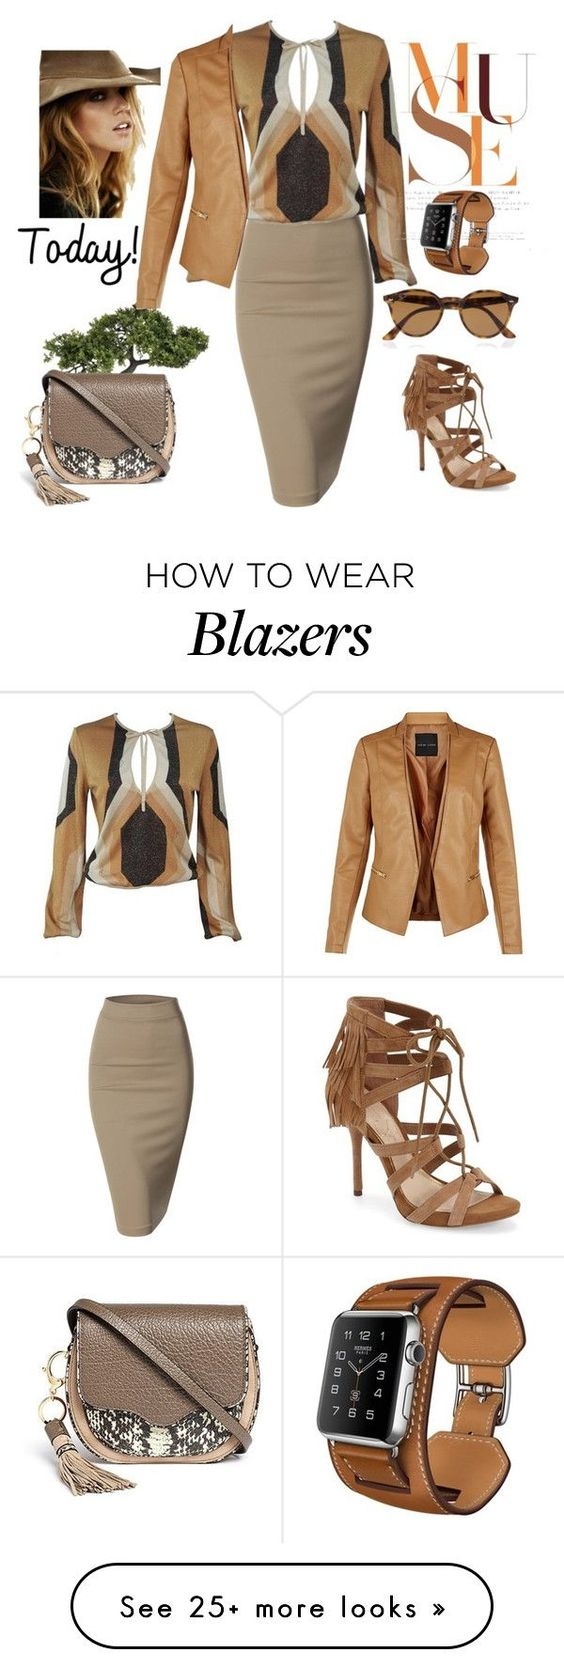 """""""Today"""" by jovana-p-com on Polyvore featuring Doublju, Gucci, Jessica Simpson, Rebecca Minkoff, Ray-Ban, women's clothing, women, female, woman and misses"""